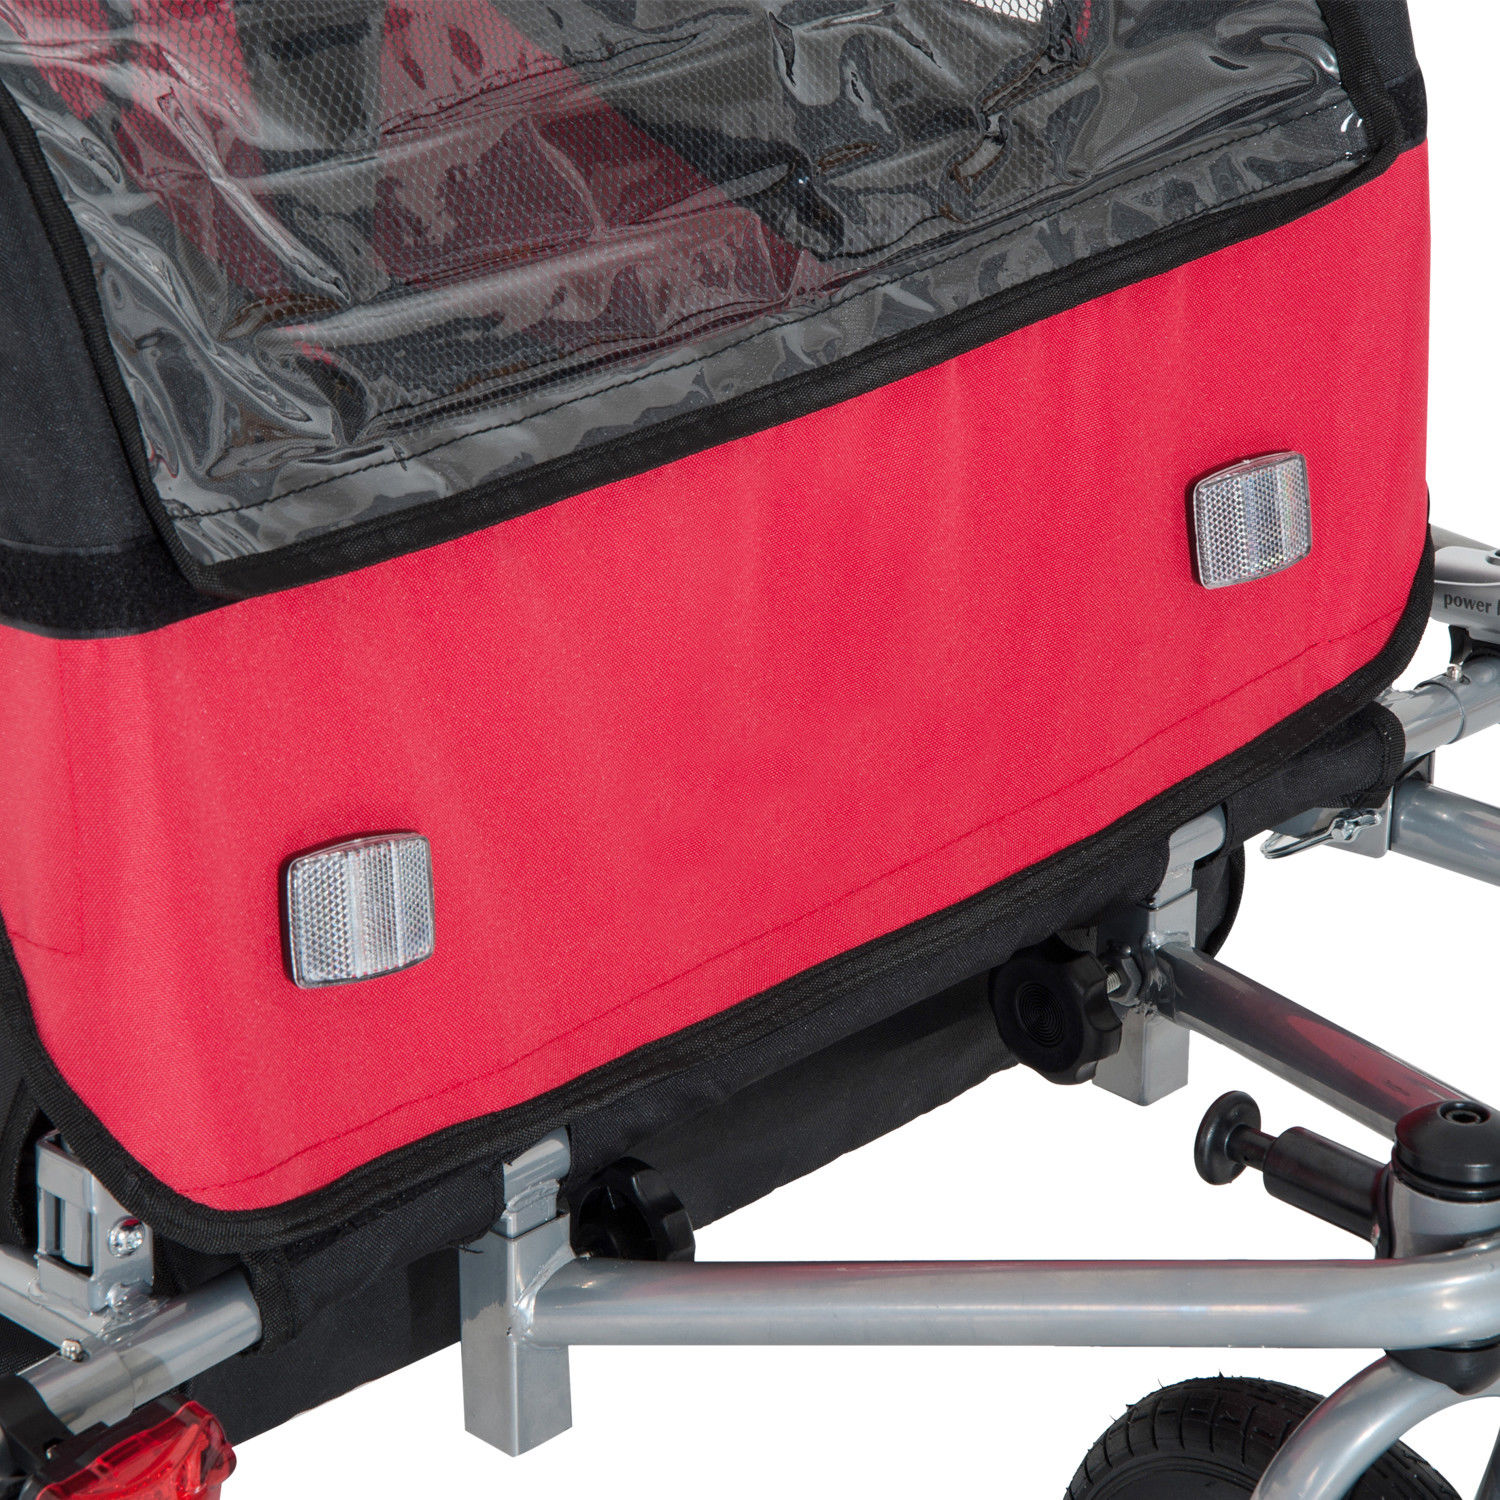 2-Seater-Child-Bike-Trailer-Kids-Carrier-Safety-Harness-Baby-Stroller-Jogger thumbnail 9